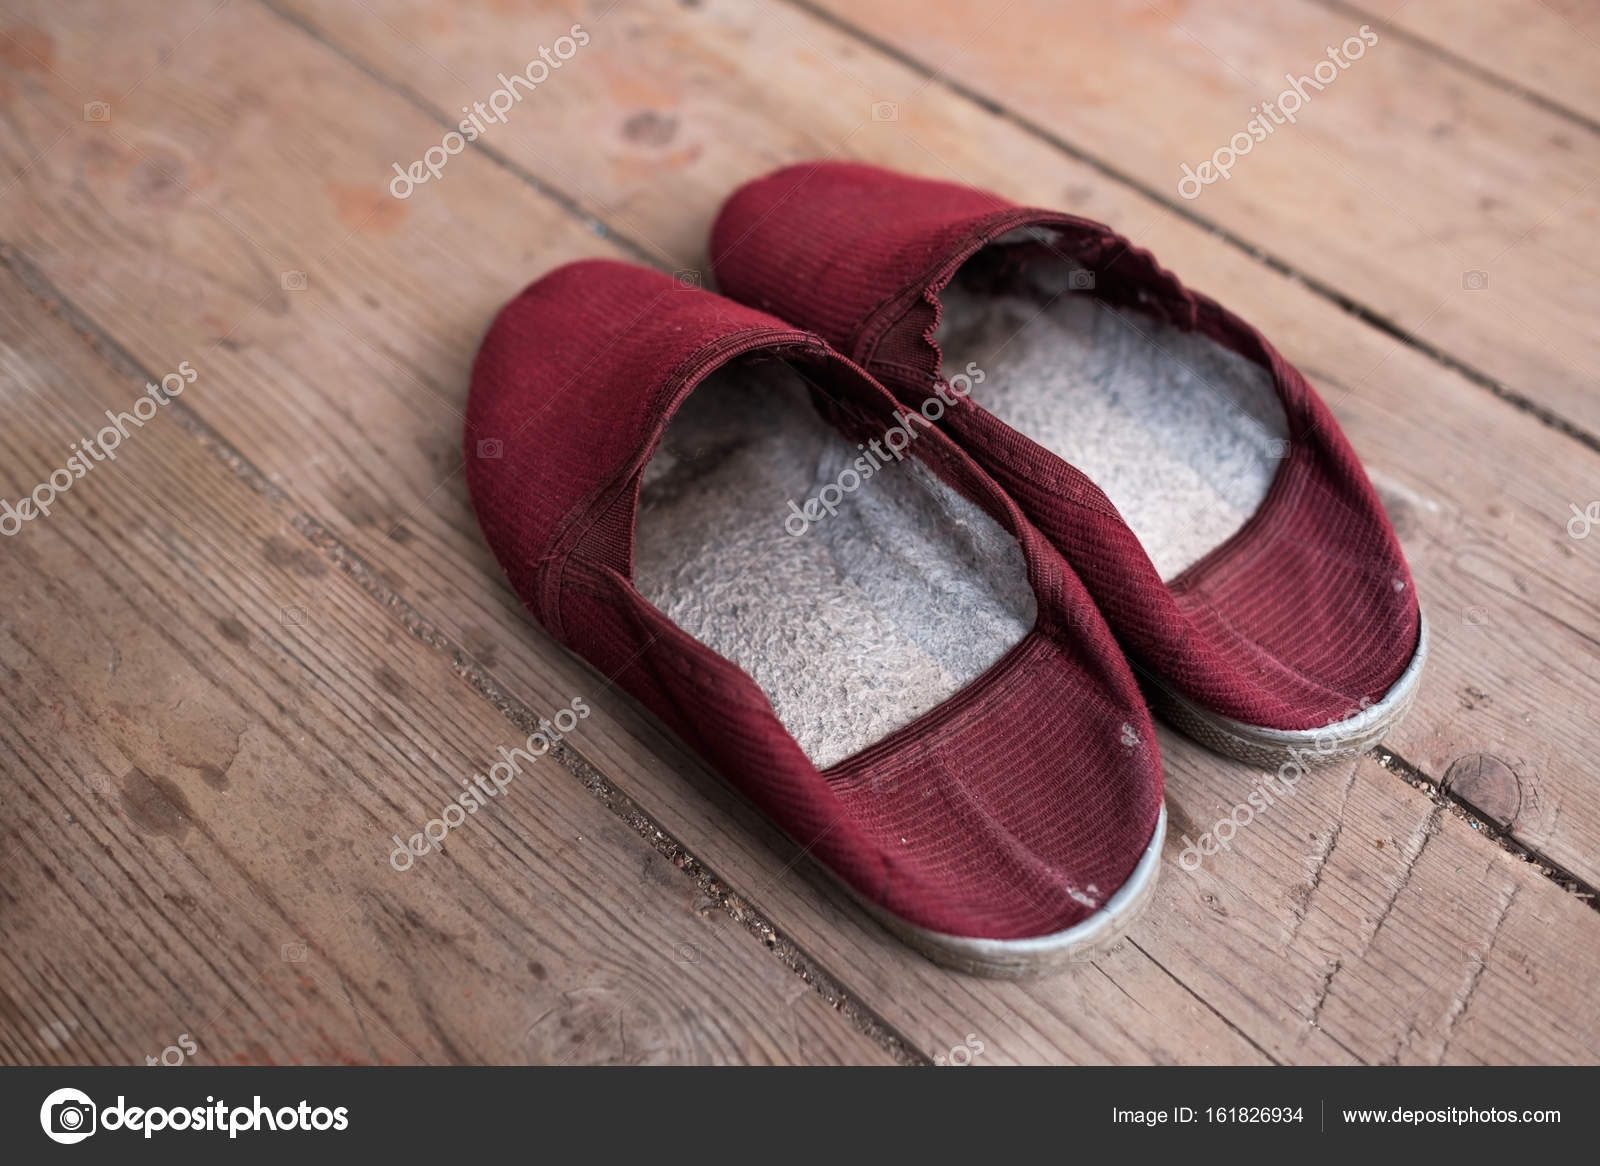 c527b1123858 Warm red slippers on the background of old wooden floor. — Stock Photo